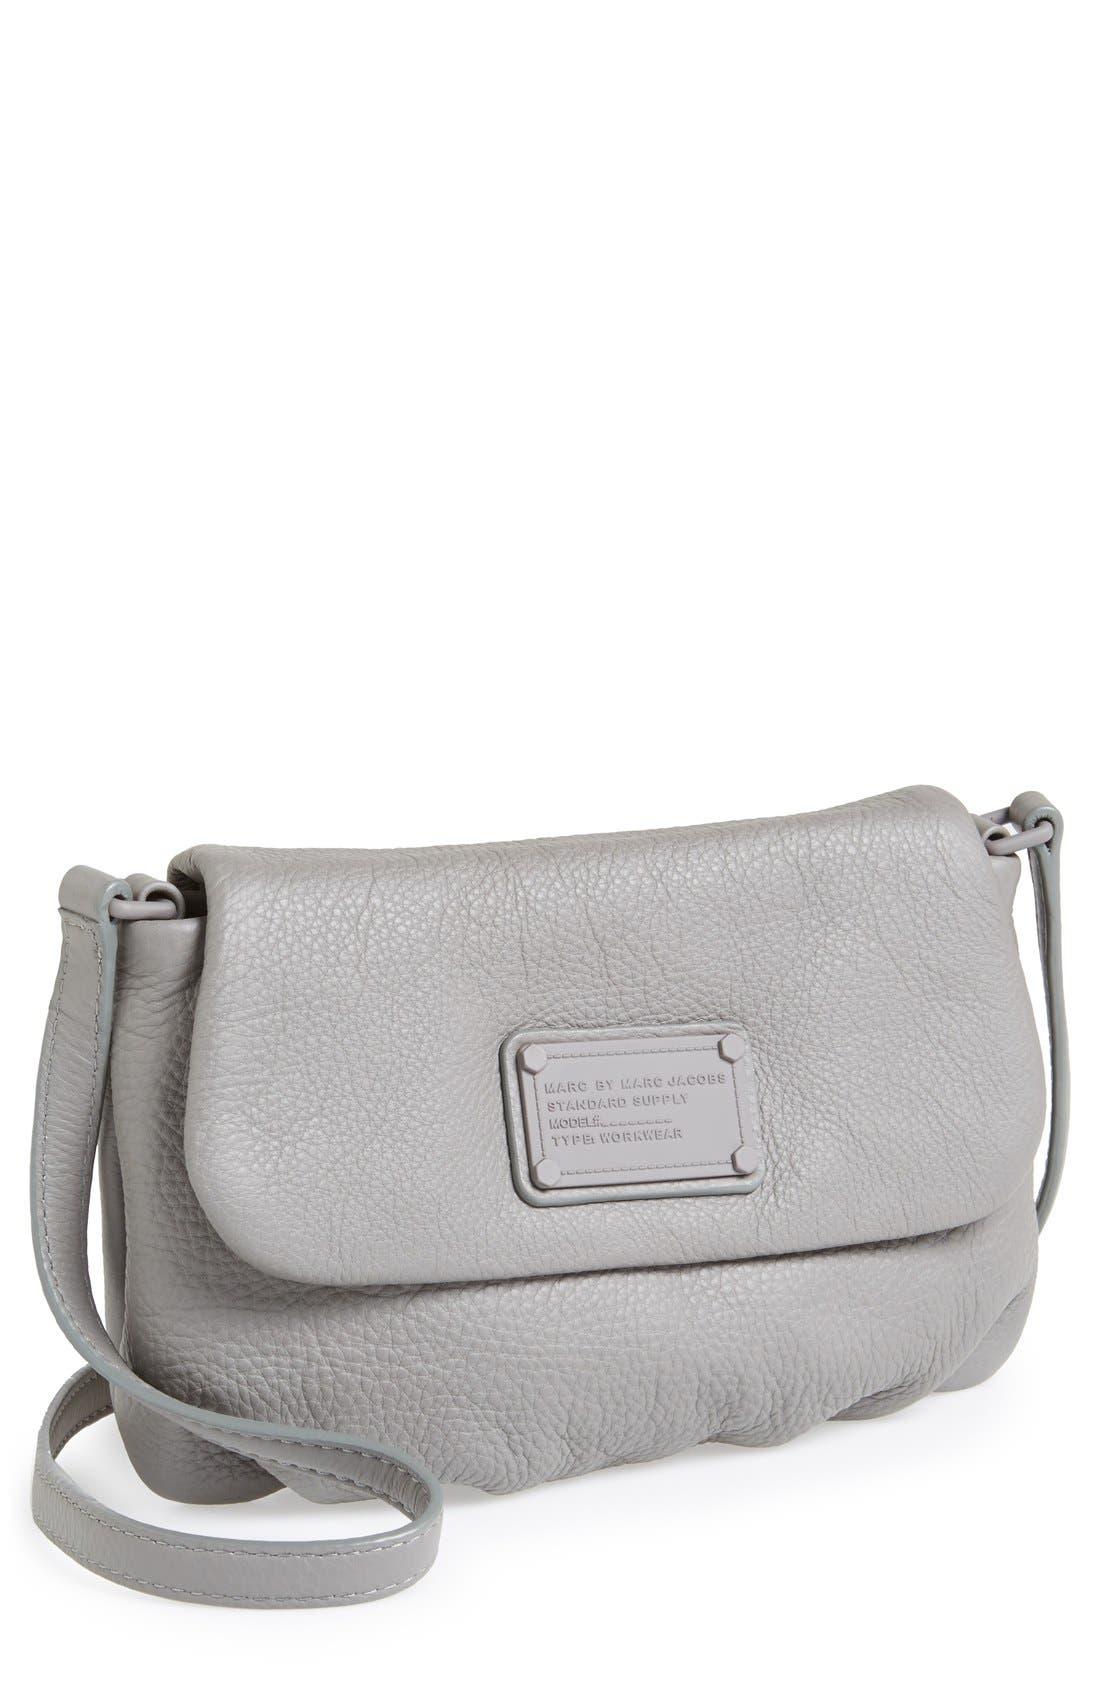 Alternate Image 1 Selected - MARC BY MARC JACOBS 'Electro Q - Flap Percy' Crossbody Bag